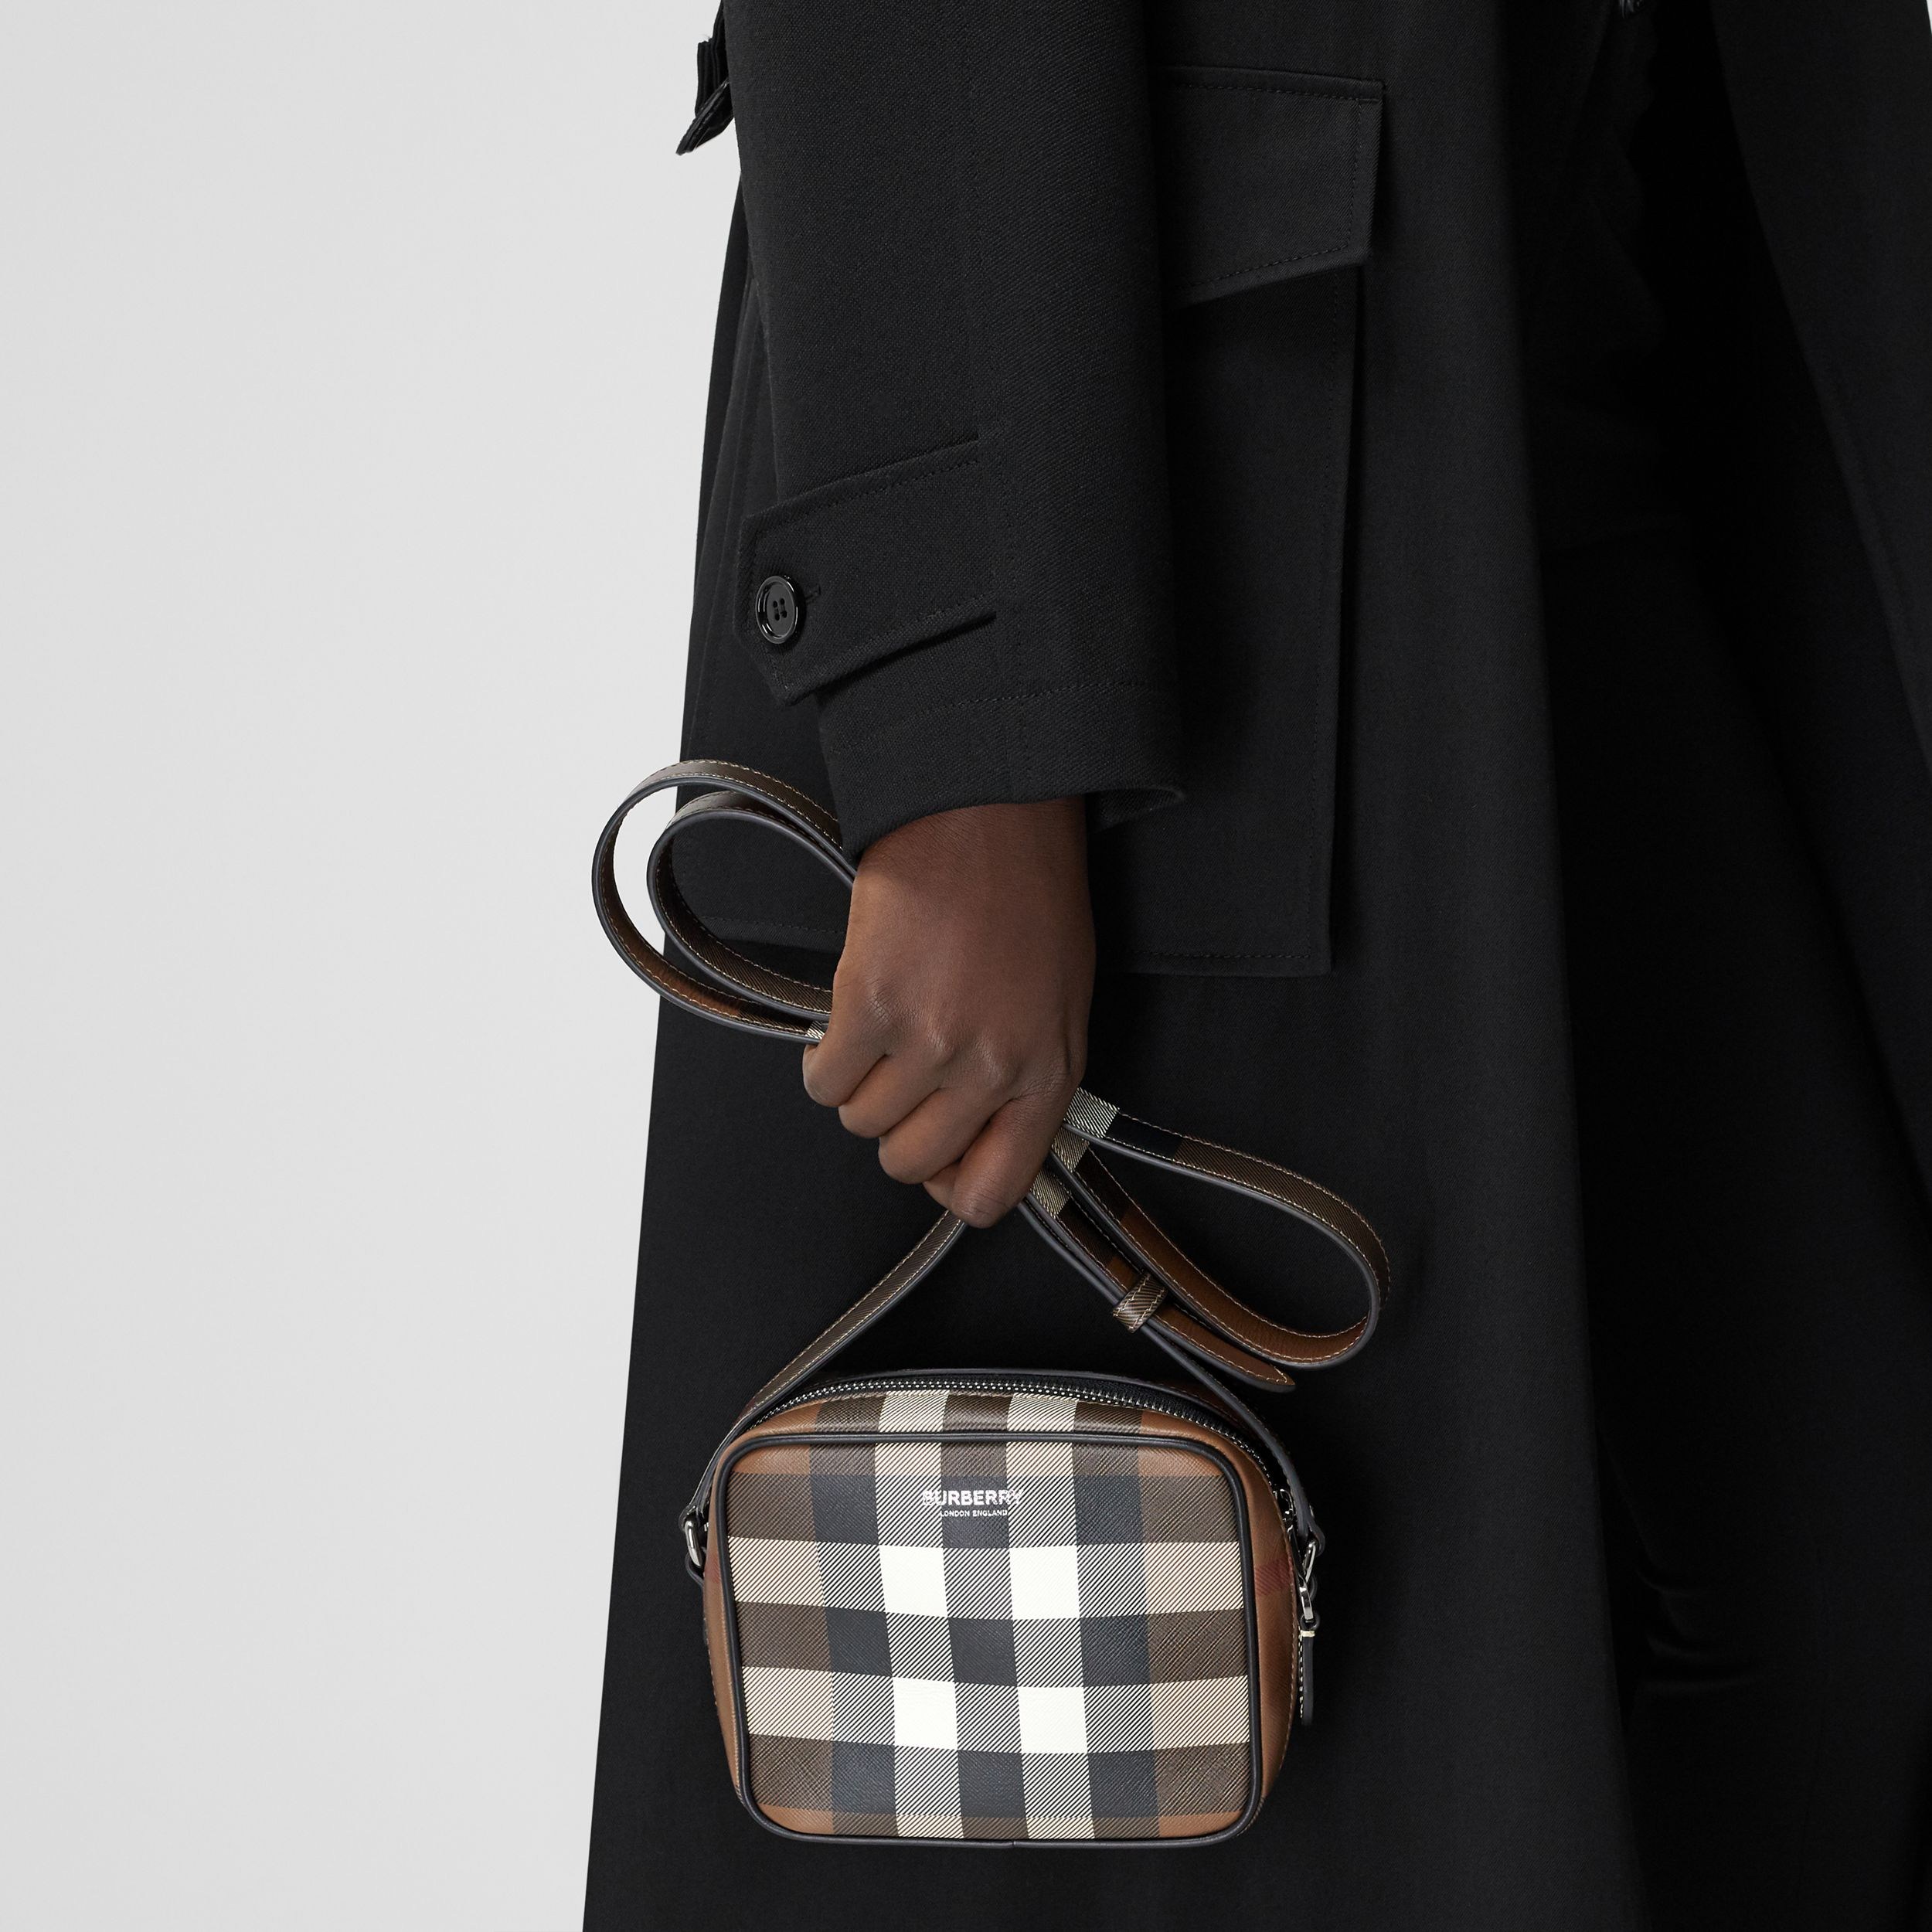 Check Print Leather Crossbody Bag in Dark Birch Brown | Burberry - 3